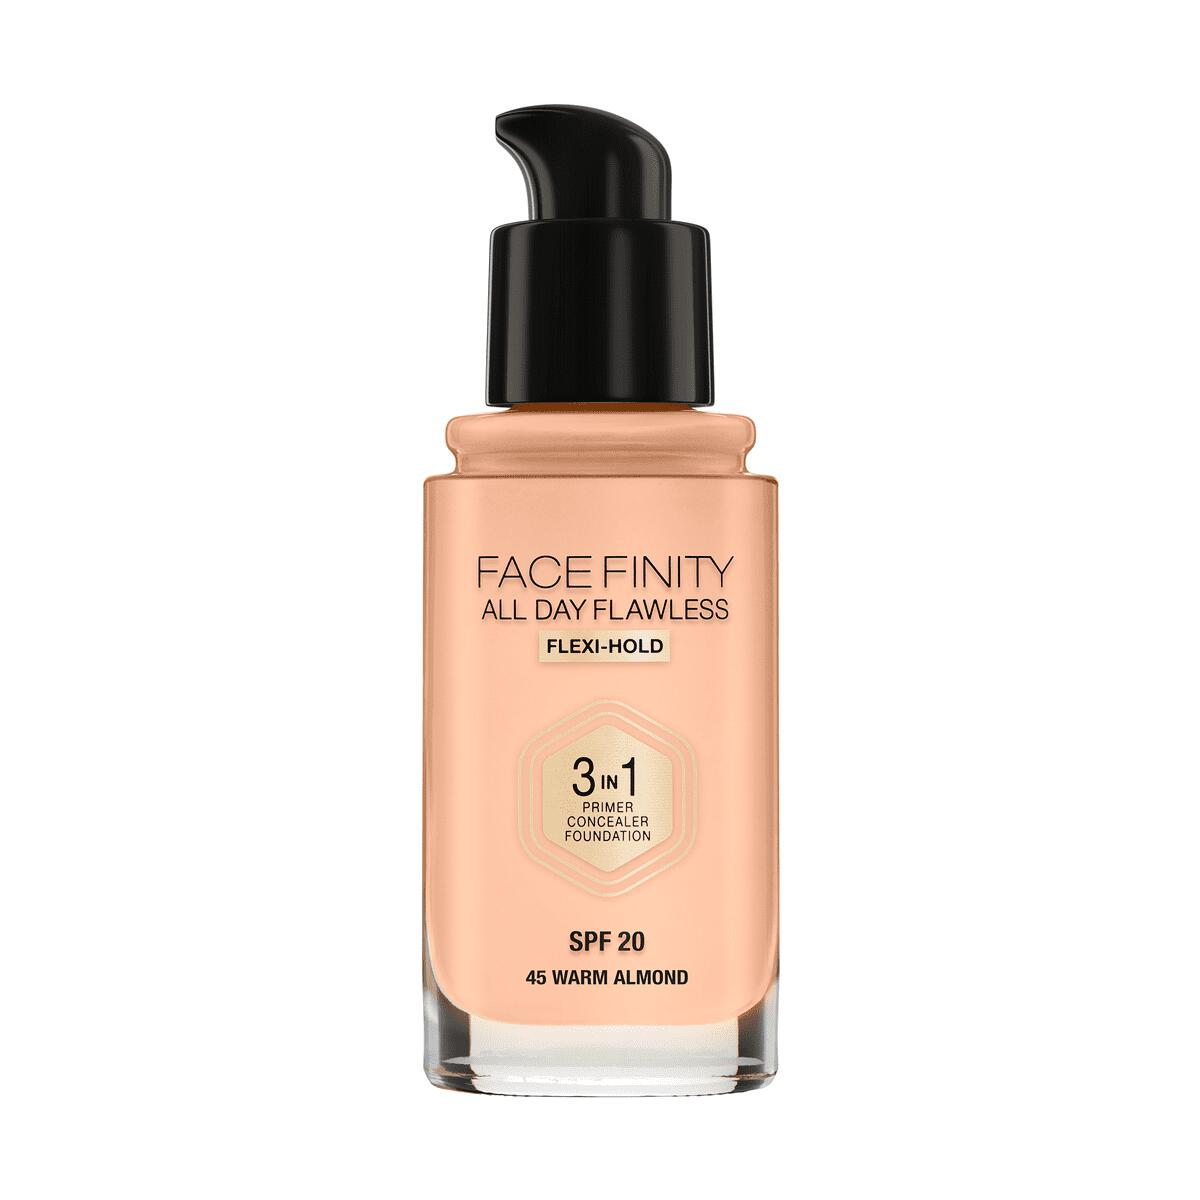 Max Factor Facefinity All Day Flawless 3-in-1 Vegan Foundation 45 Almond